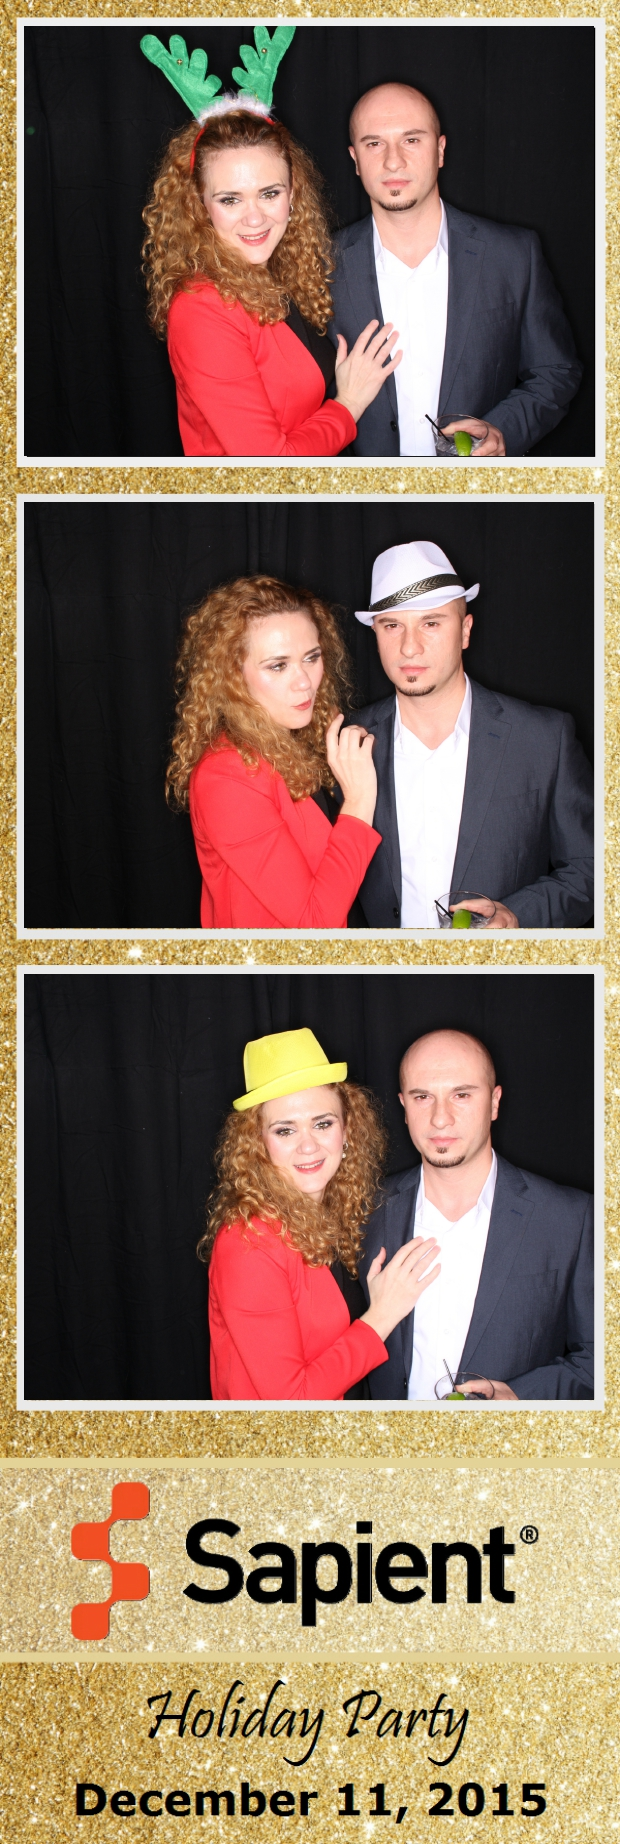 Guest House Events Photo Booth Sapient Holiday Party (7).jpg